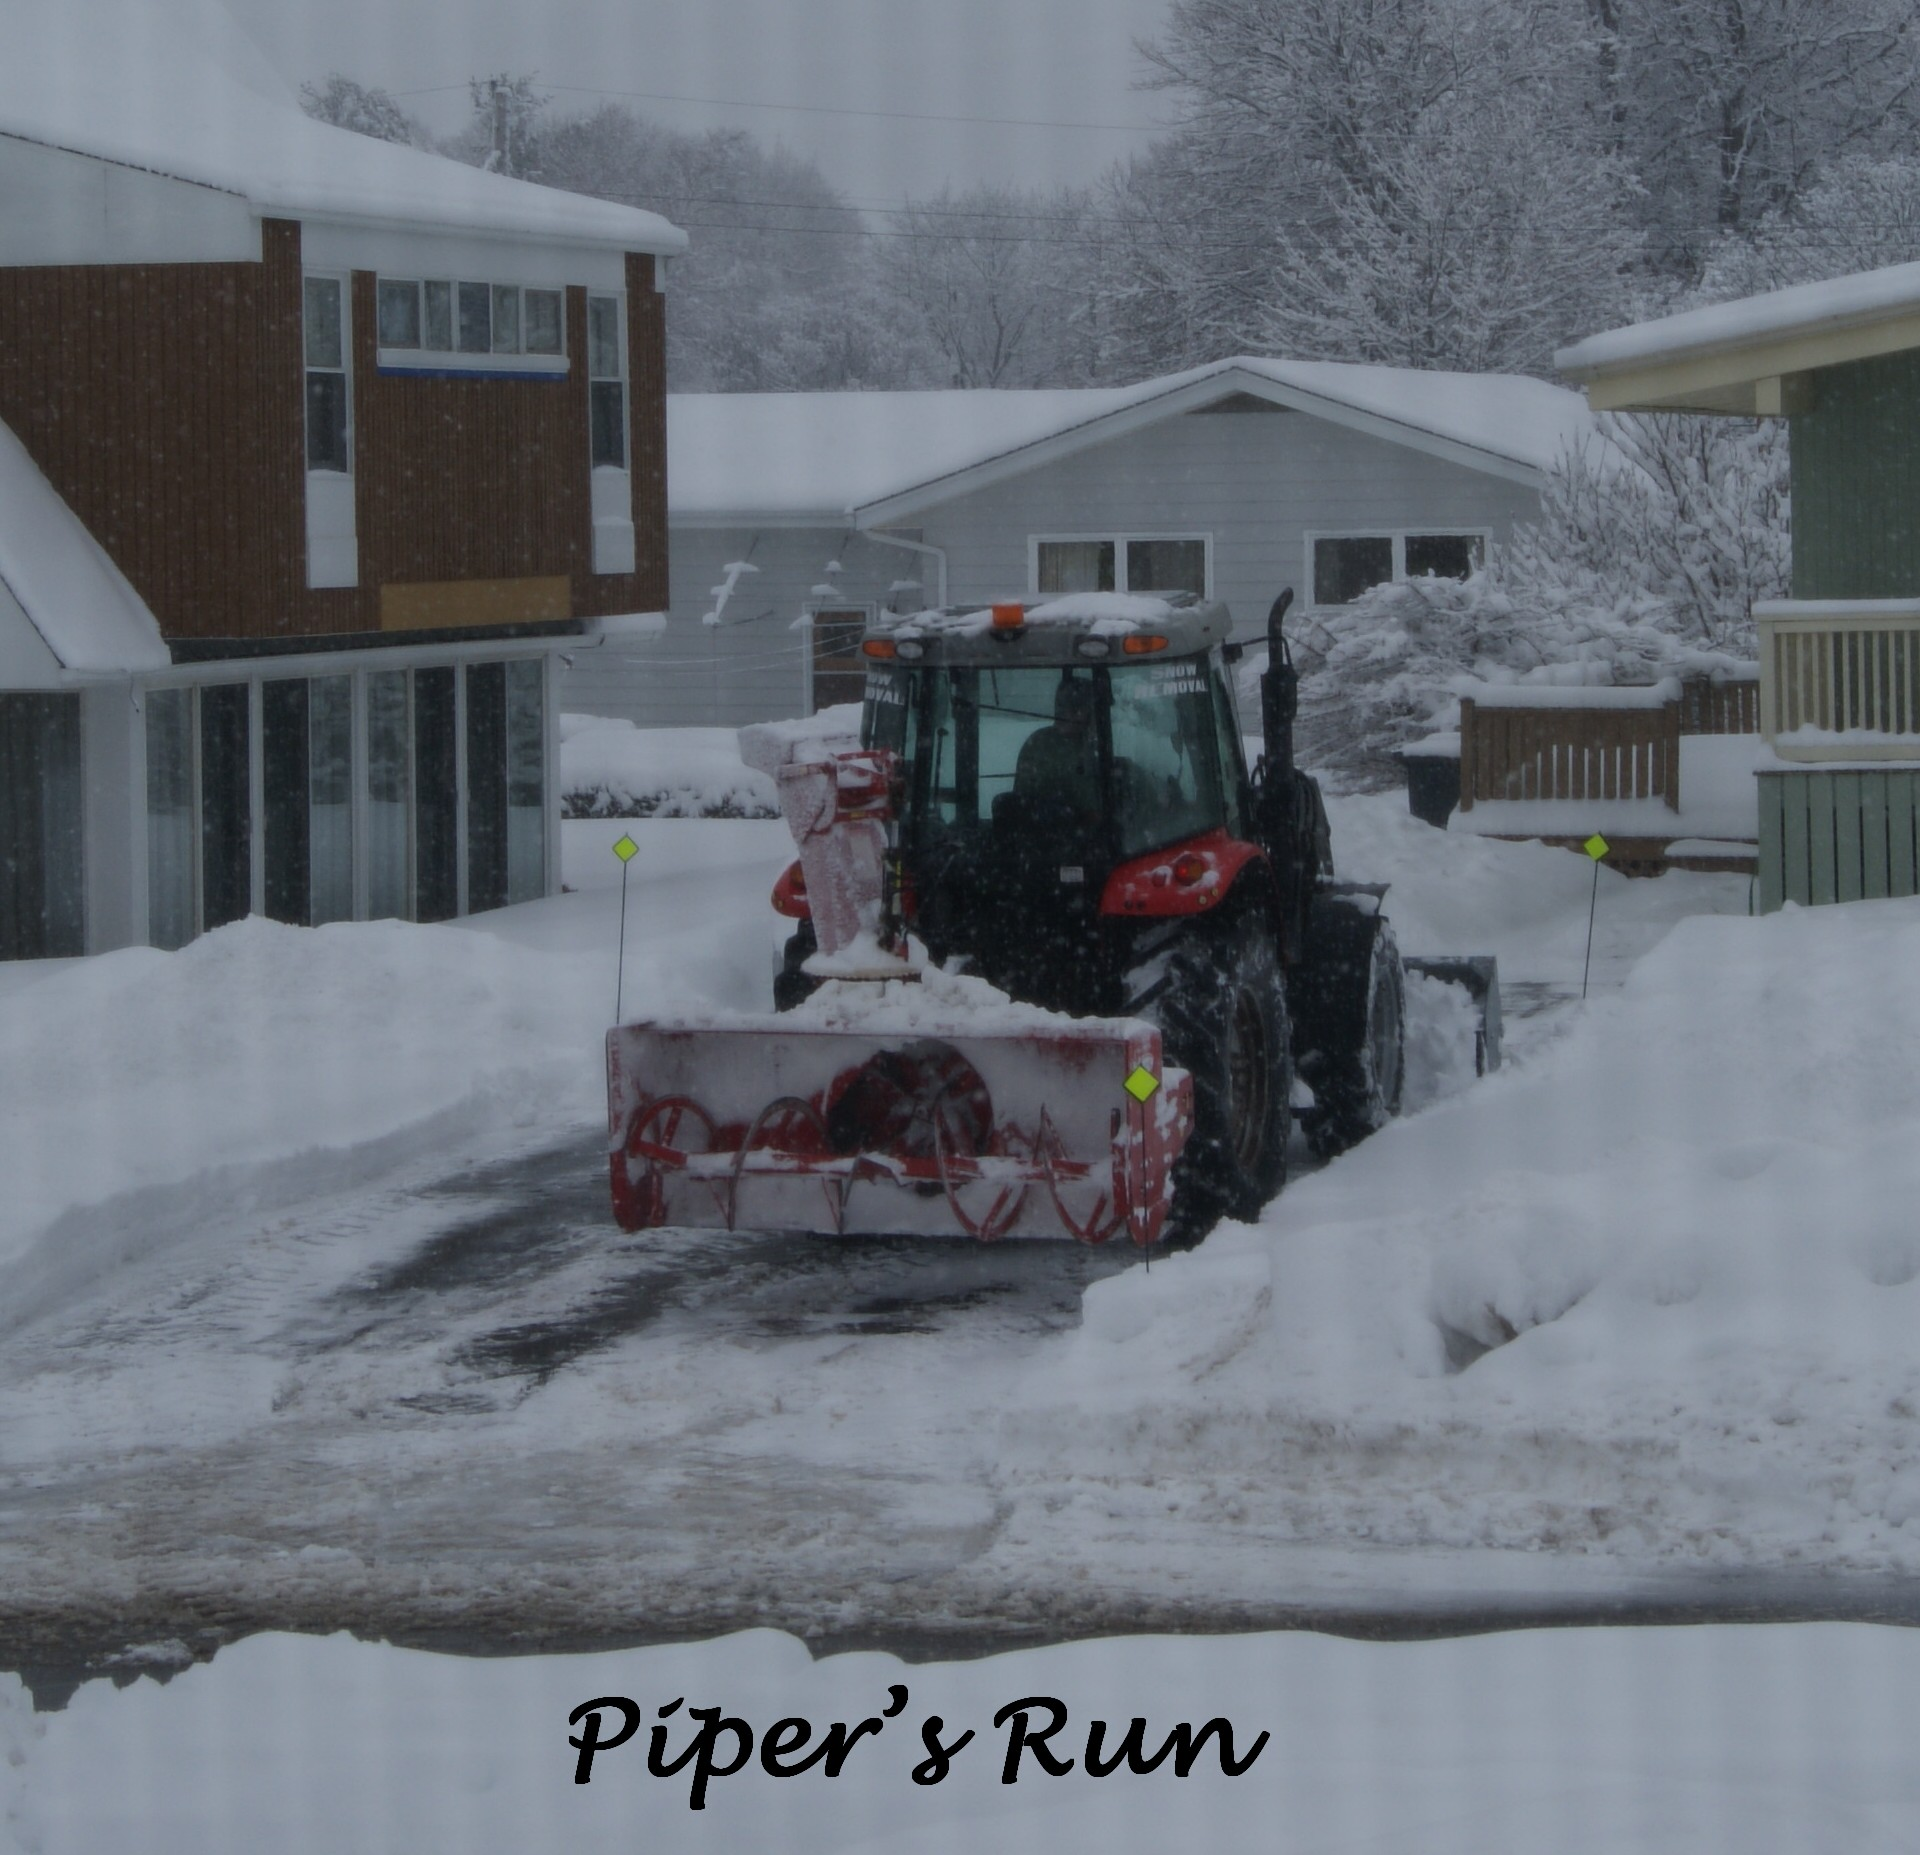 Two daddies plow outside